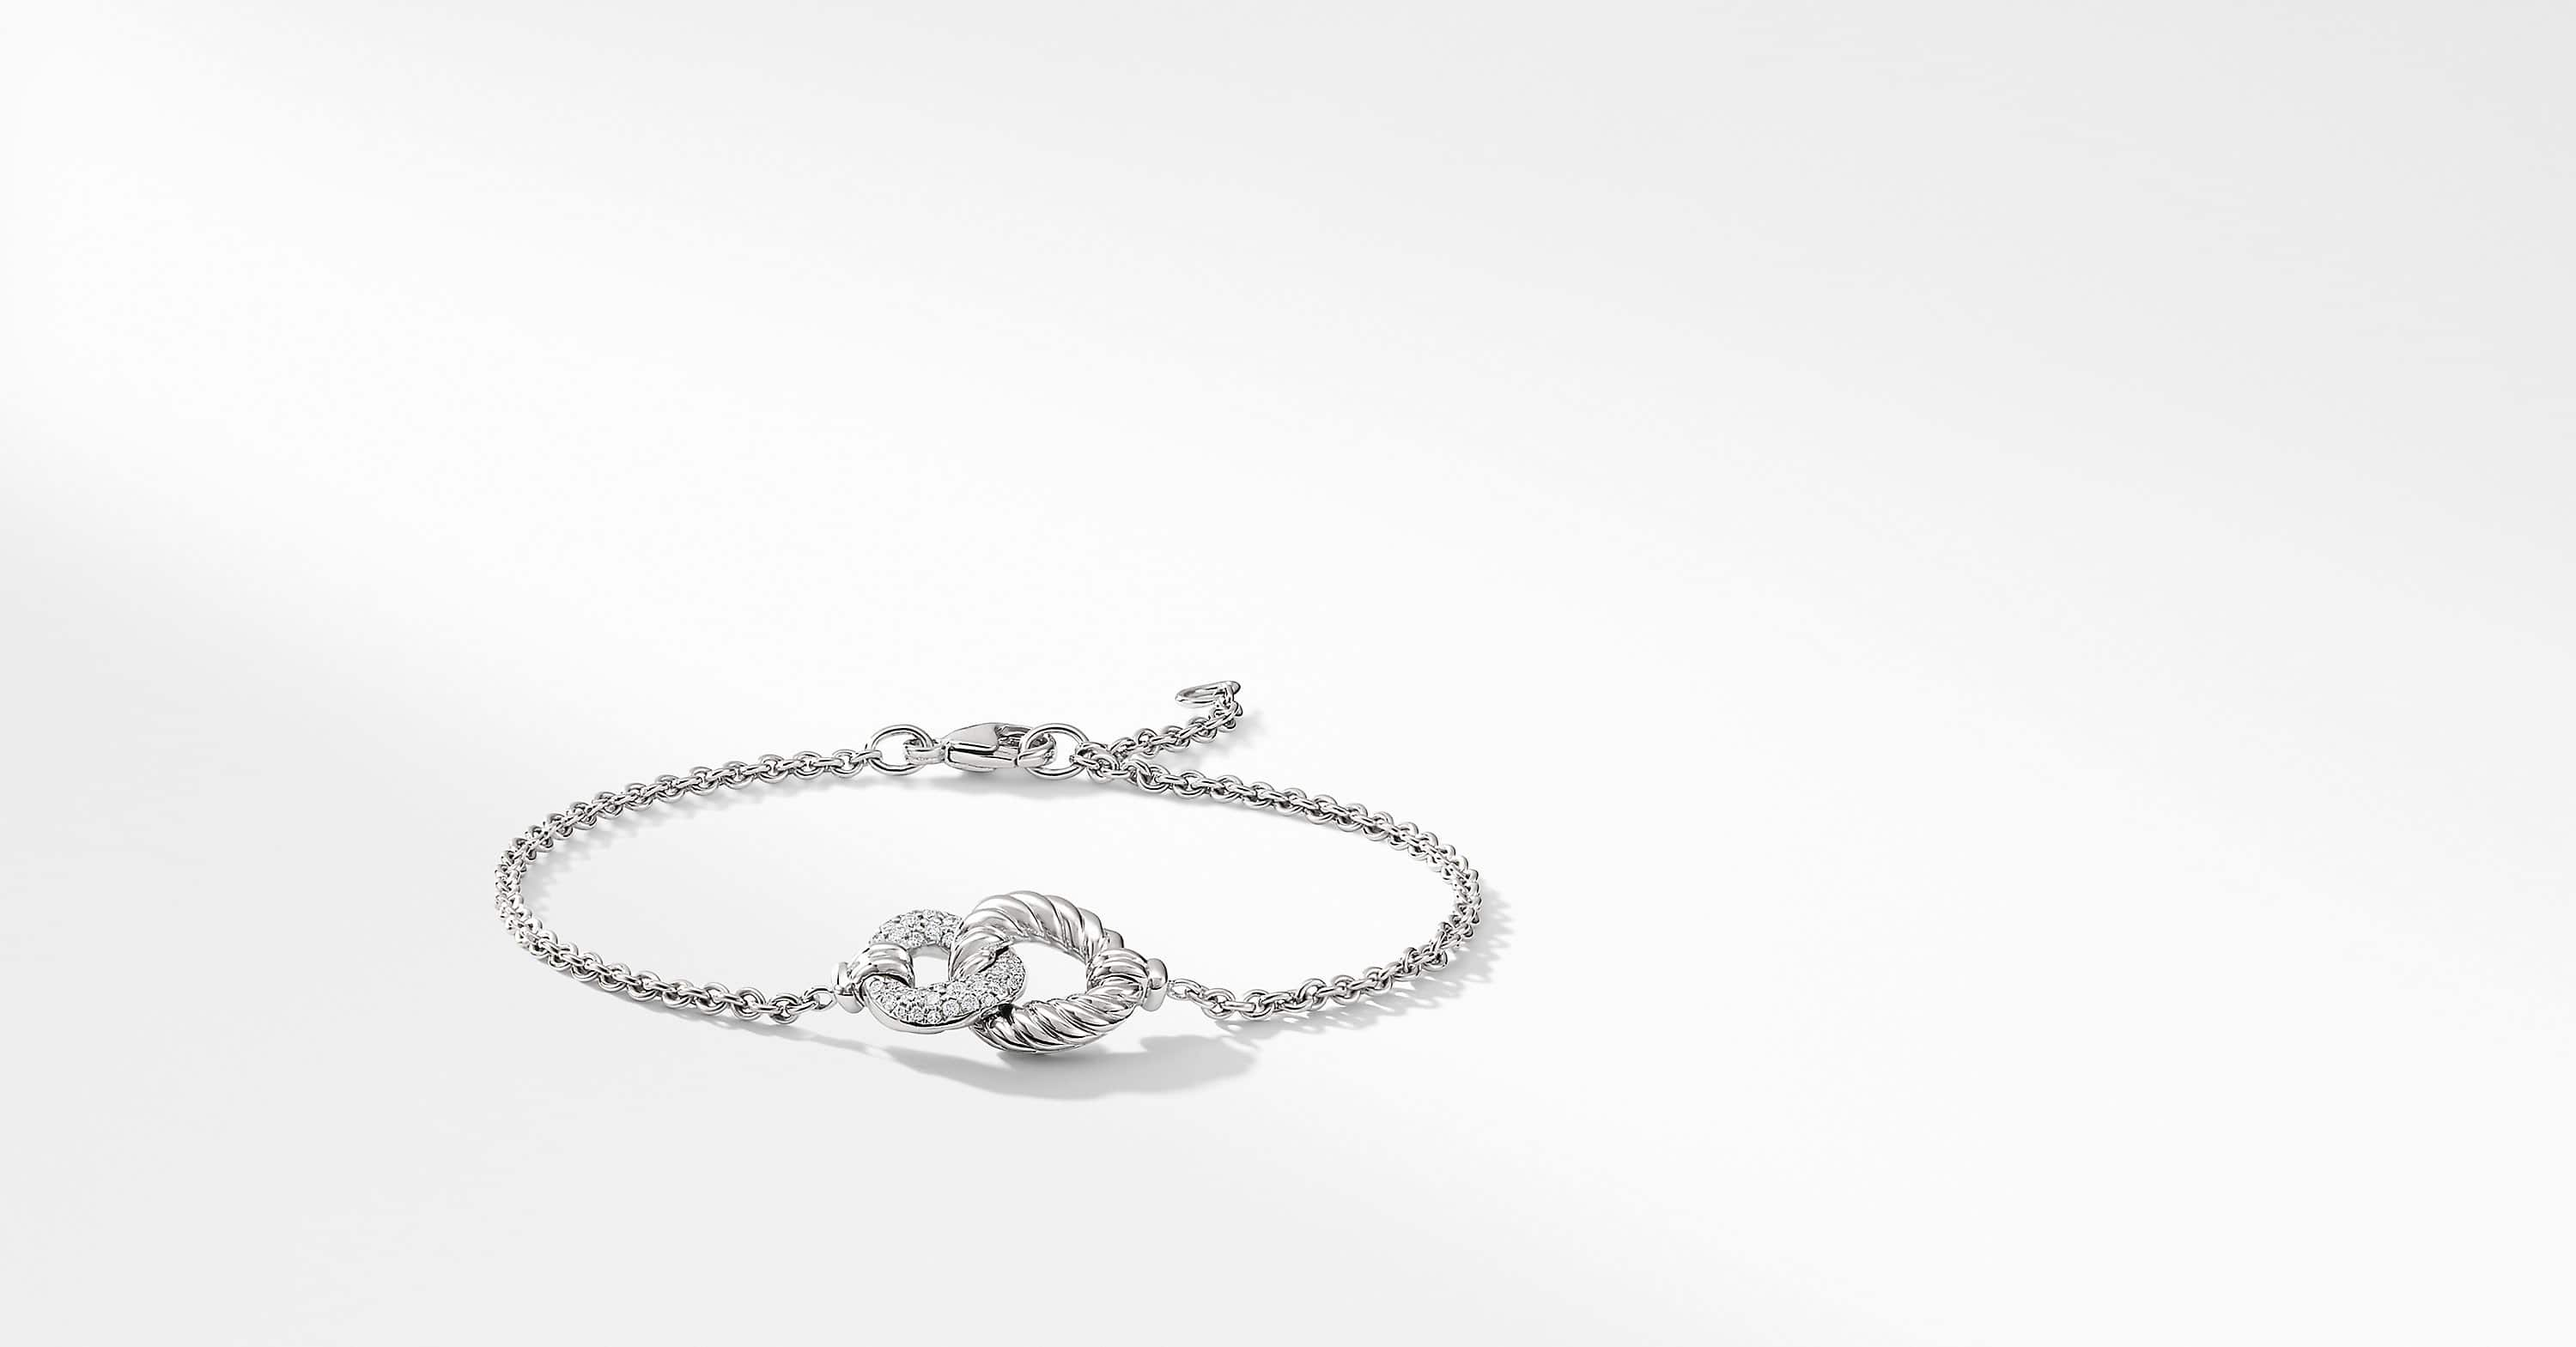 Belmont Curb Link Pendant Bracelet with Diamonds in 18K White Gold